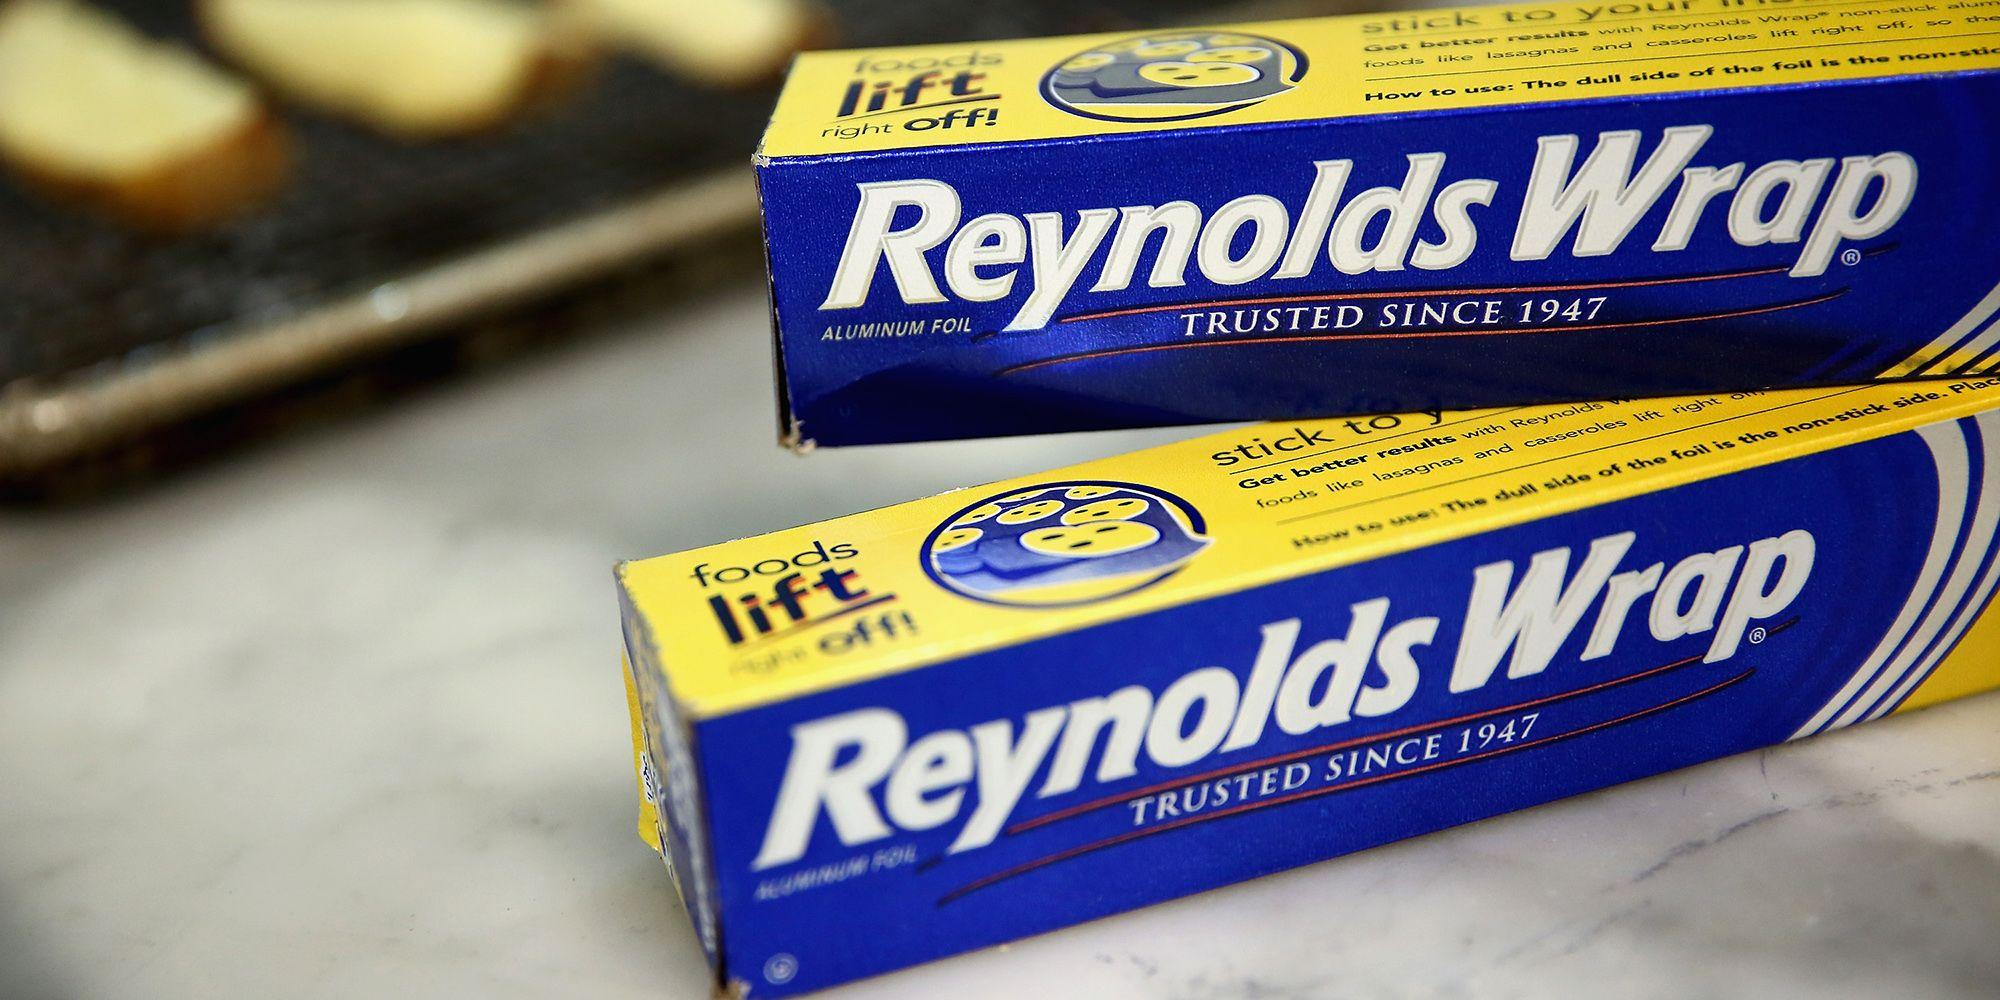 Reynolds Wrap Maker Targets $7 Billion IPO Valuation